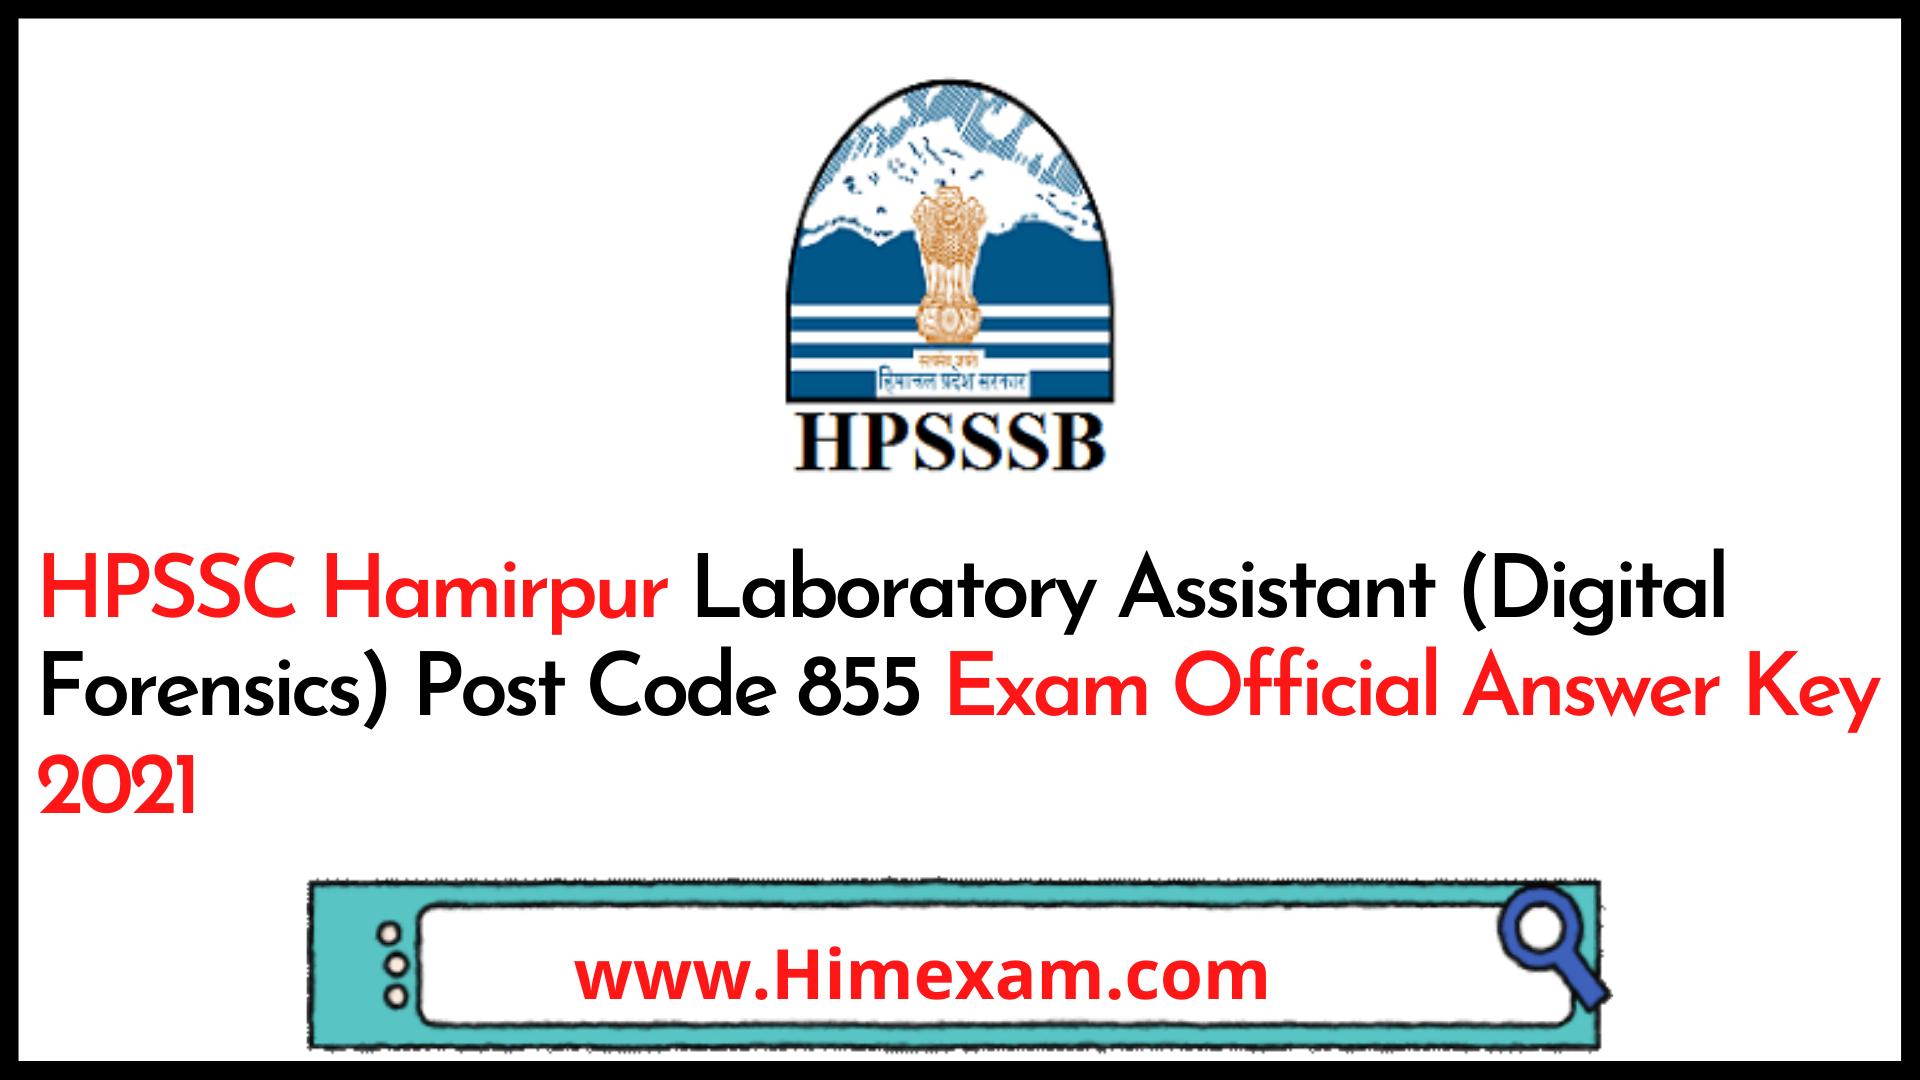 HPSSC Hamirpur Laboratory Assistant (Digital Forensics) Post Code 855 Exam Official Answer Key 2021